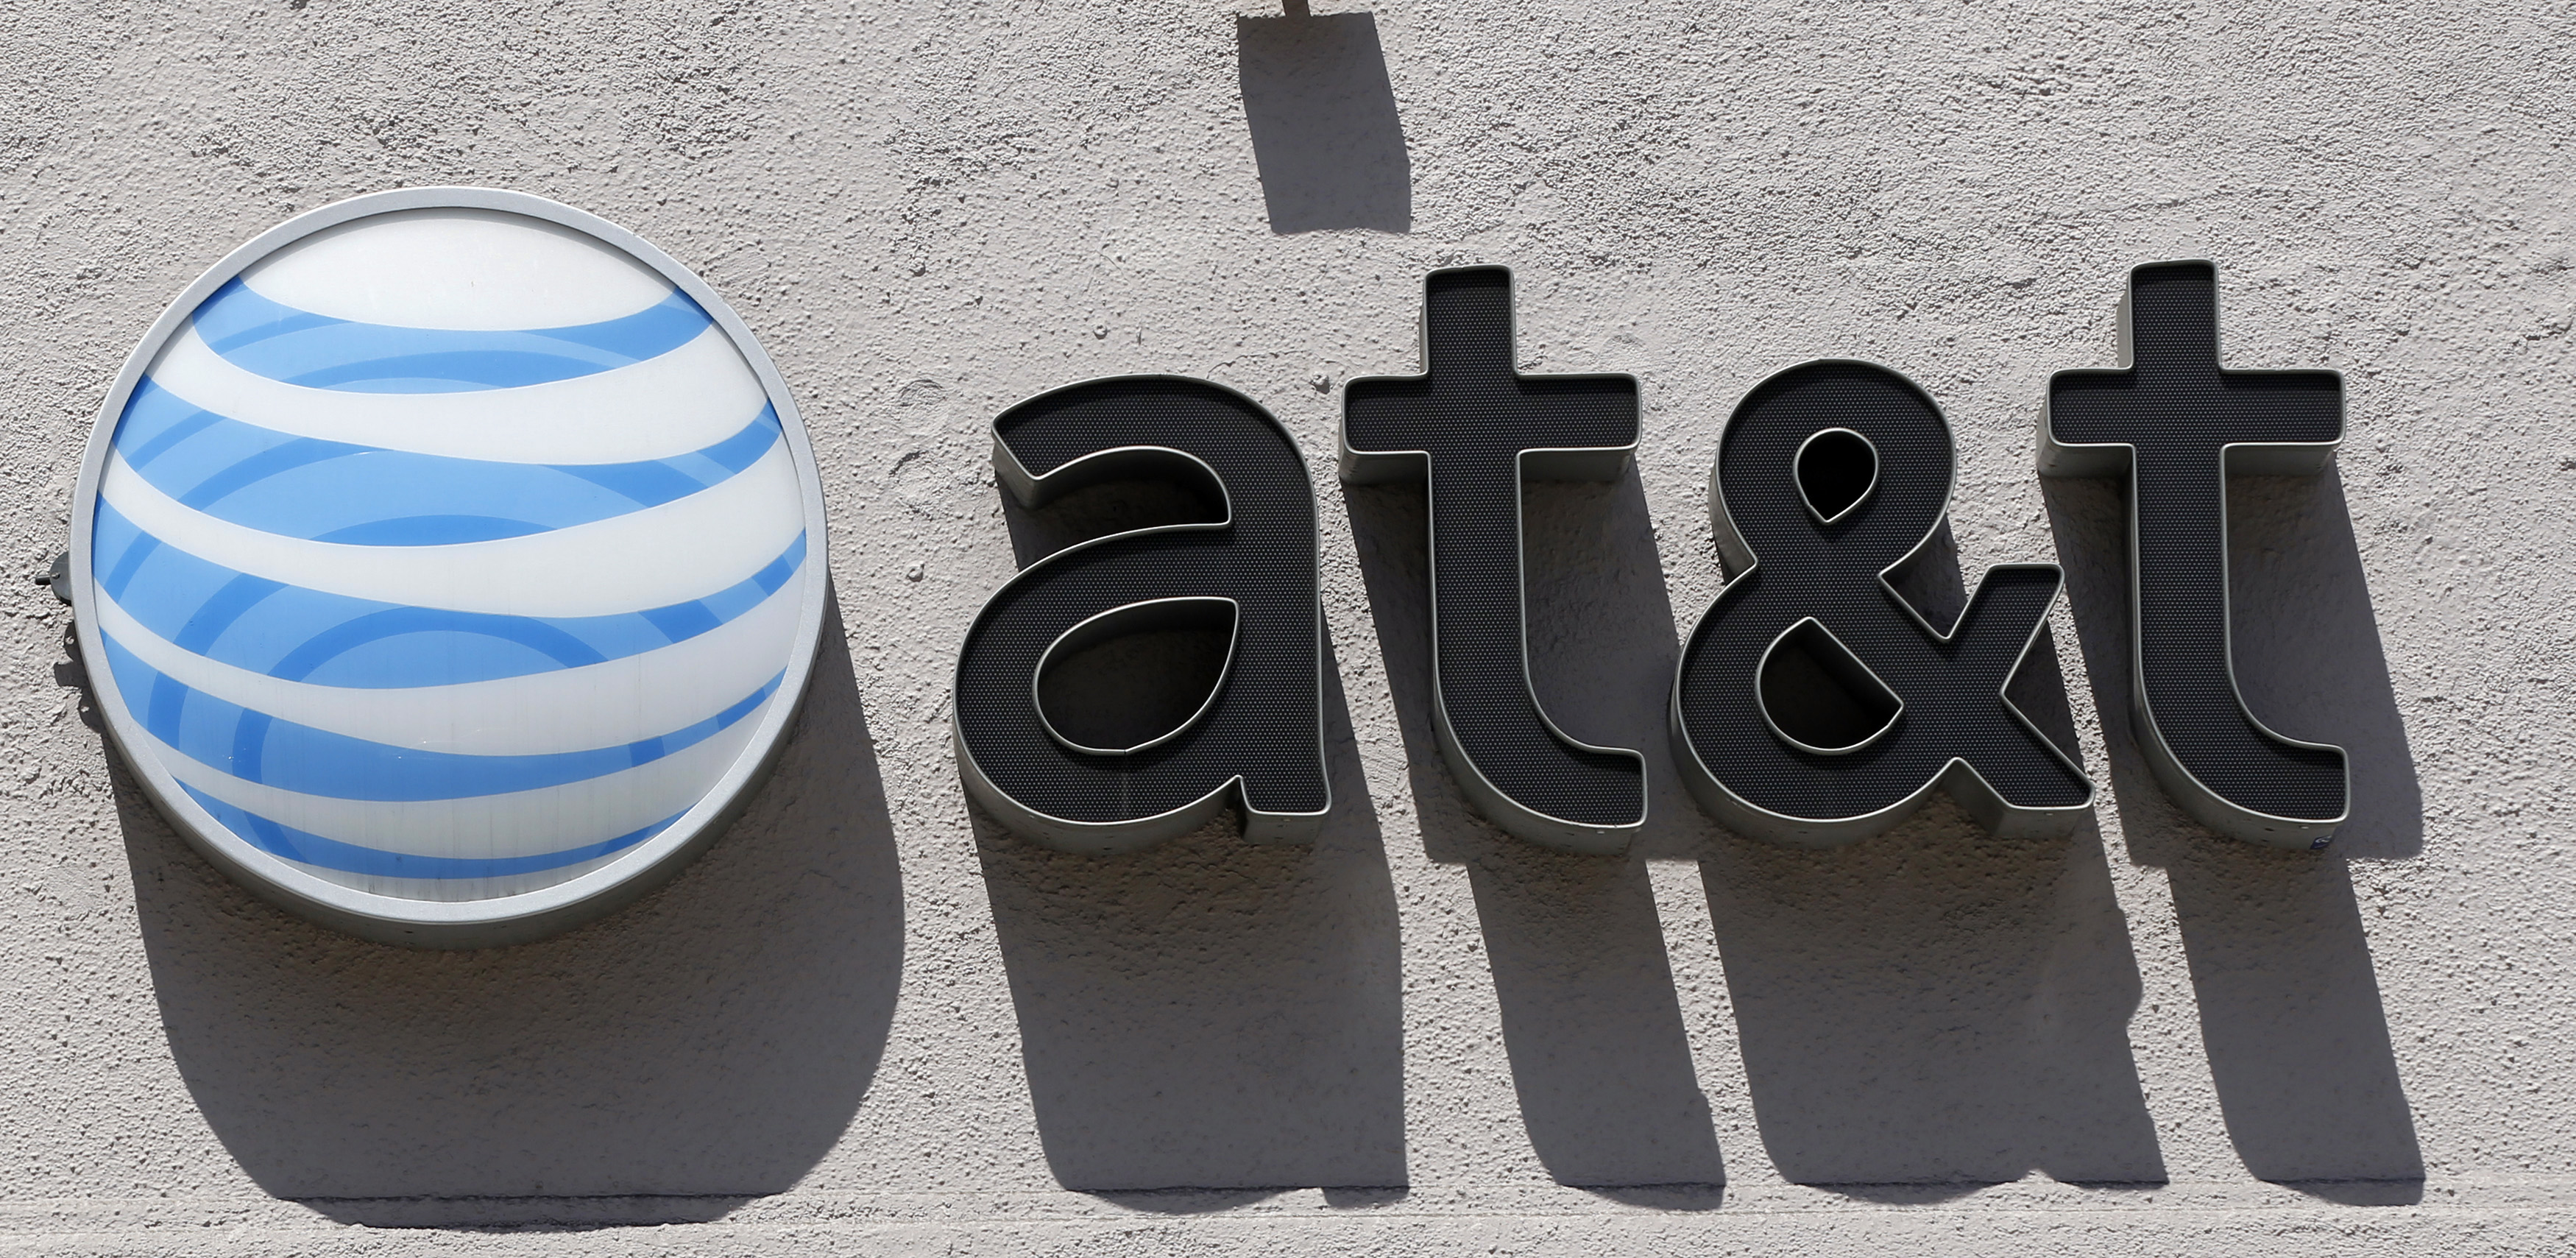 An At&T logo.     REUTERS/Danny Moloshok (UNITED STATES - Tags: BUSINESS TELECOMS LOGO)